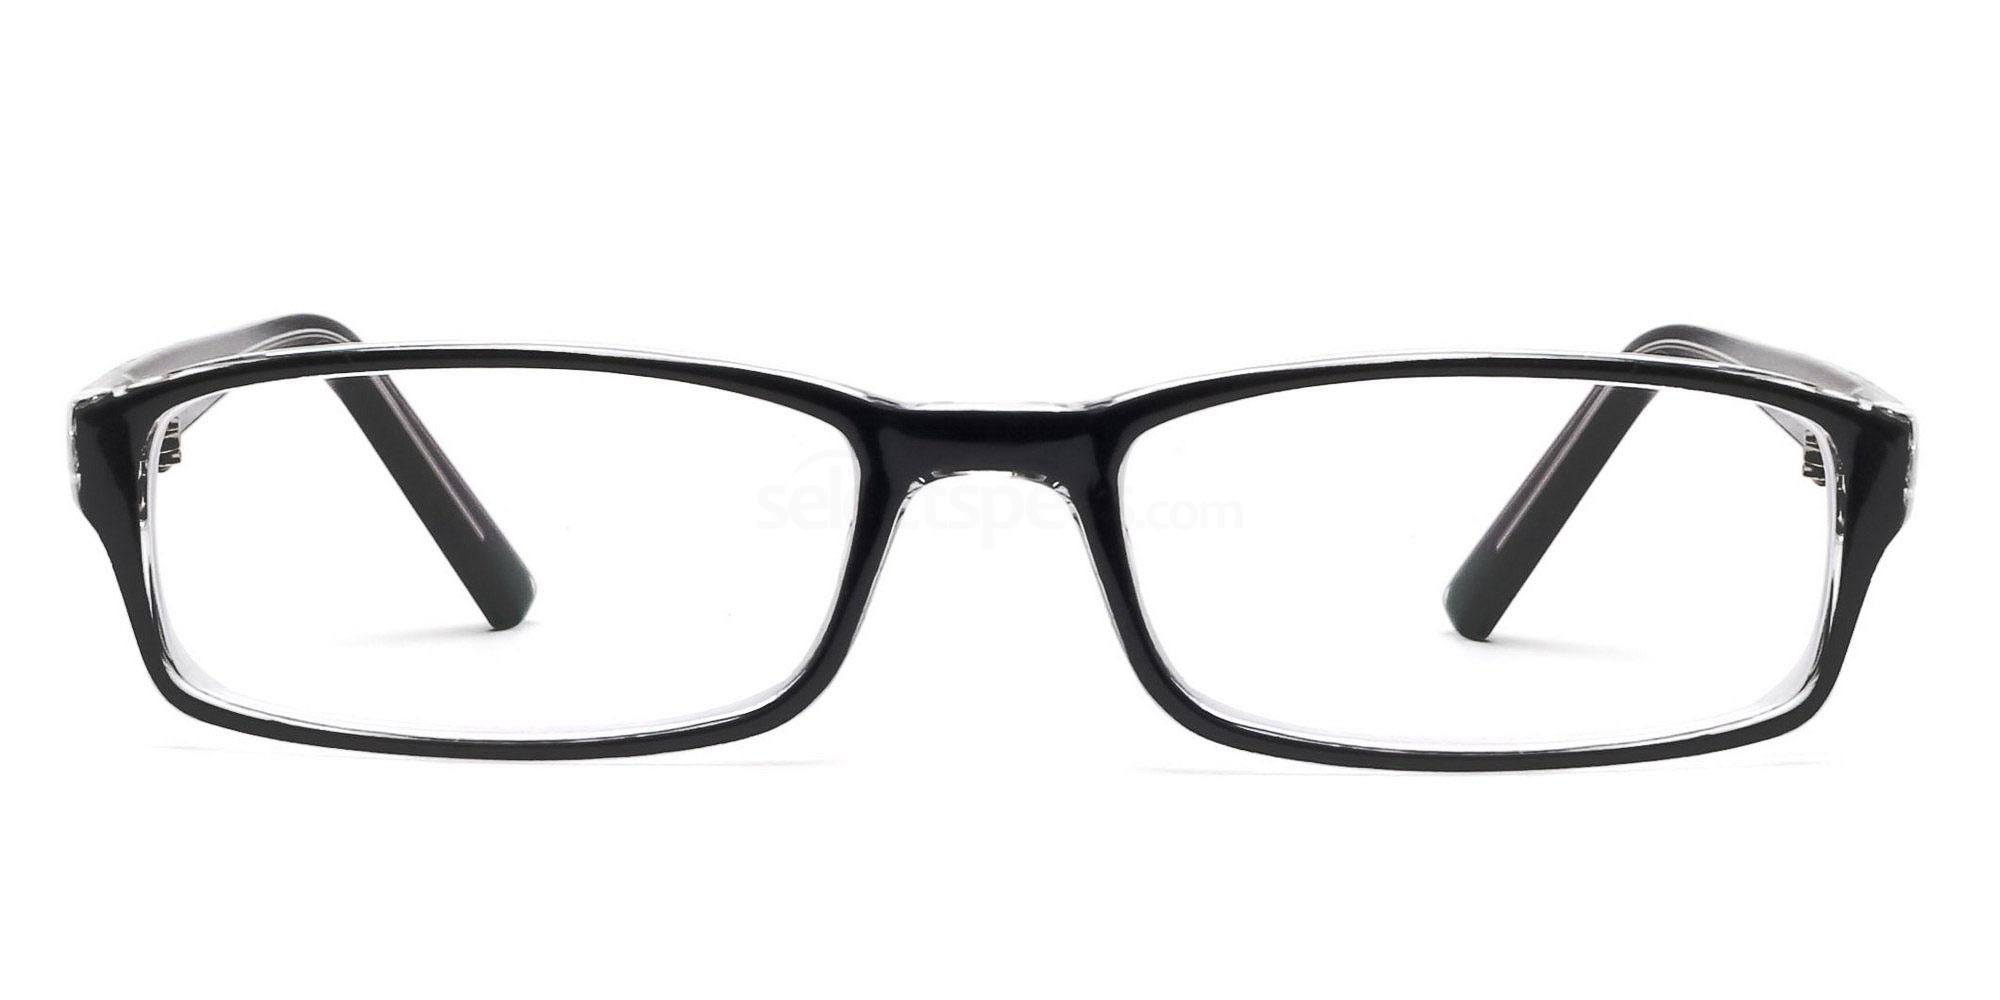 COL.33 2264 - Black and Clear Glasses, Savannah